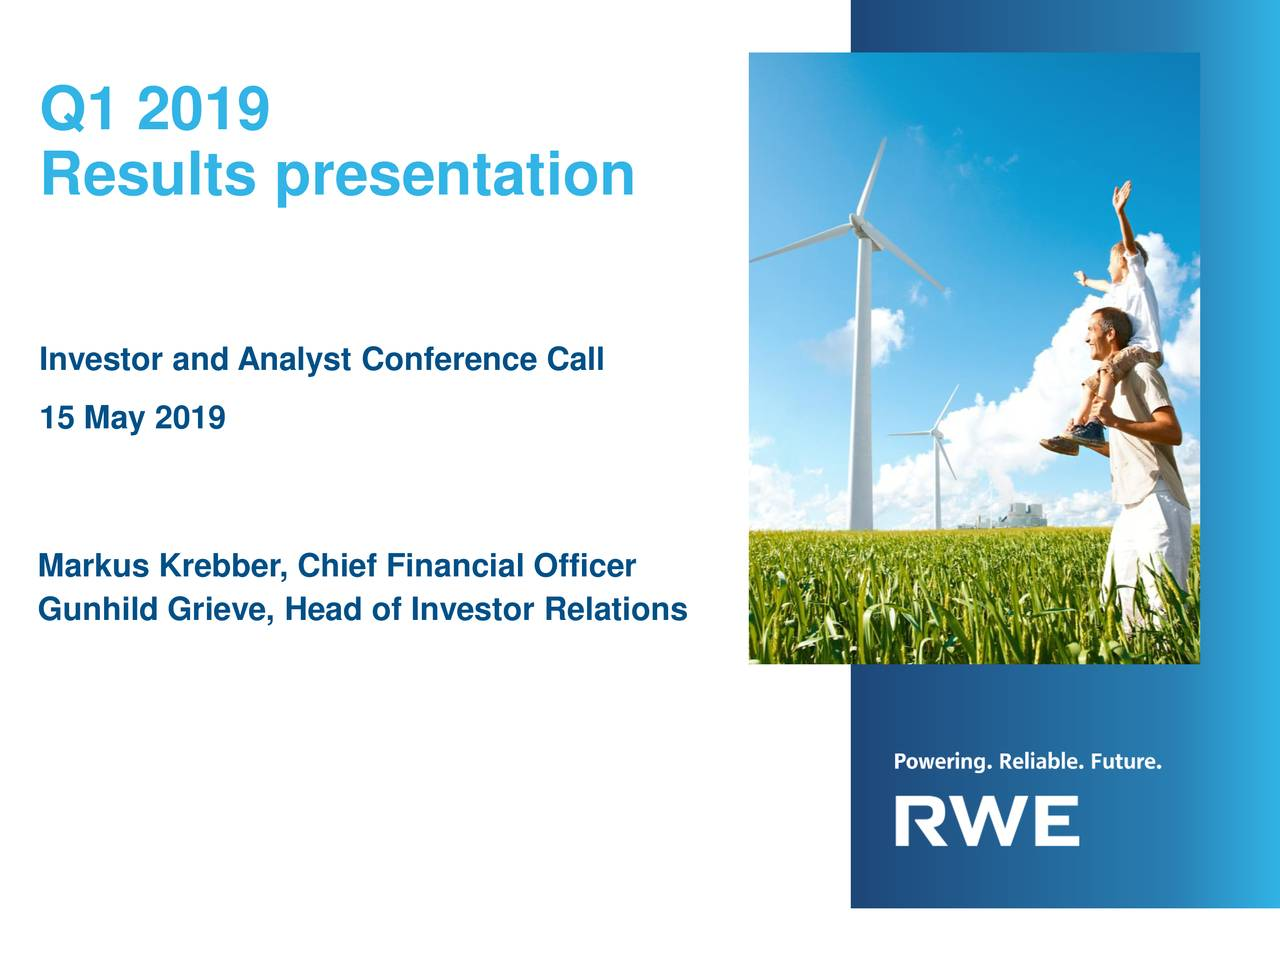 Results presentation Investor and Analyst Conference Call 15 May 2019 Markus Krebber, Chief Financial Officer Gunhild Grieve, Head of Investor Relations